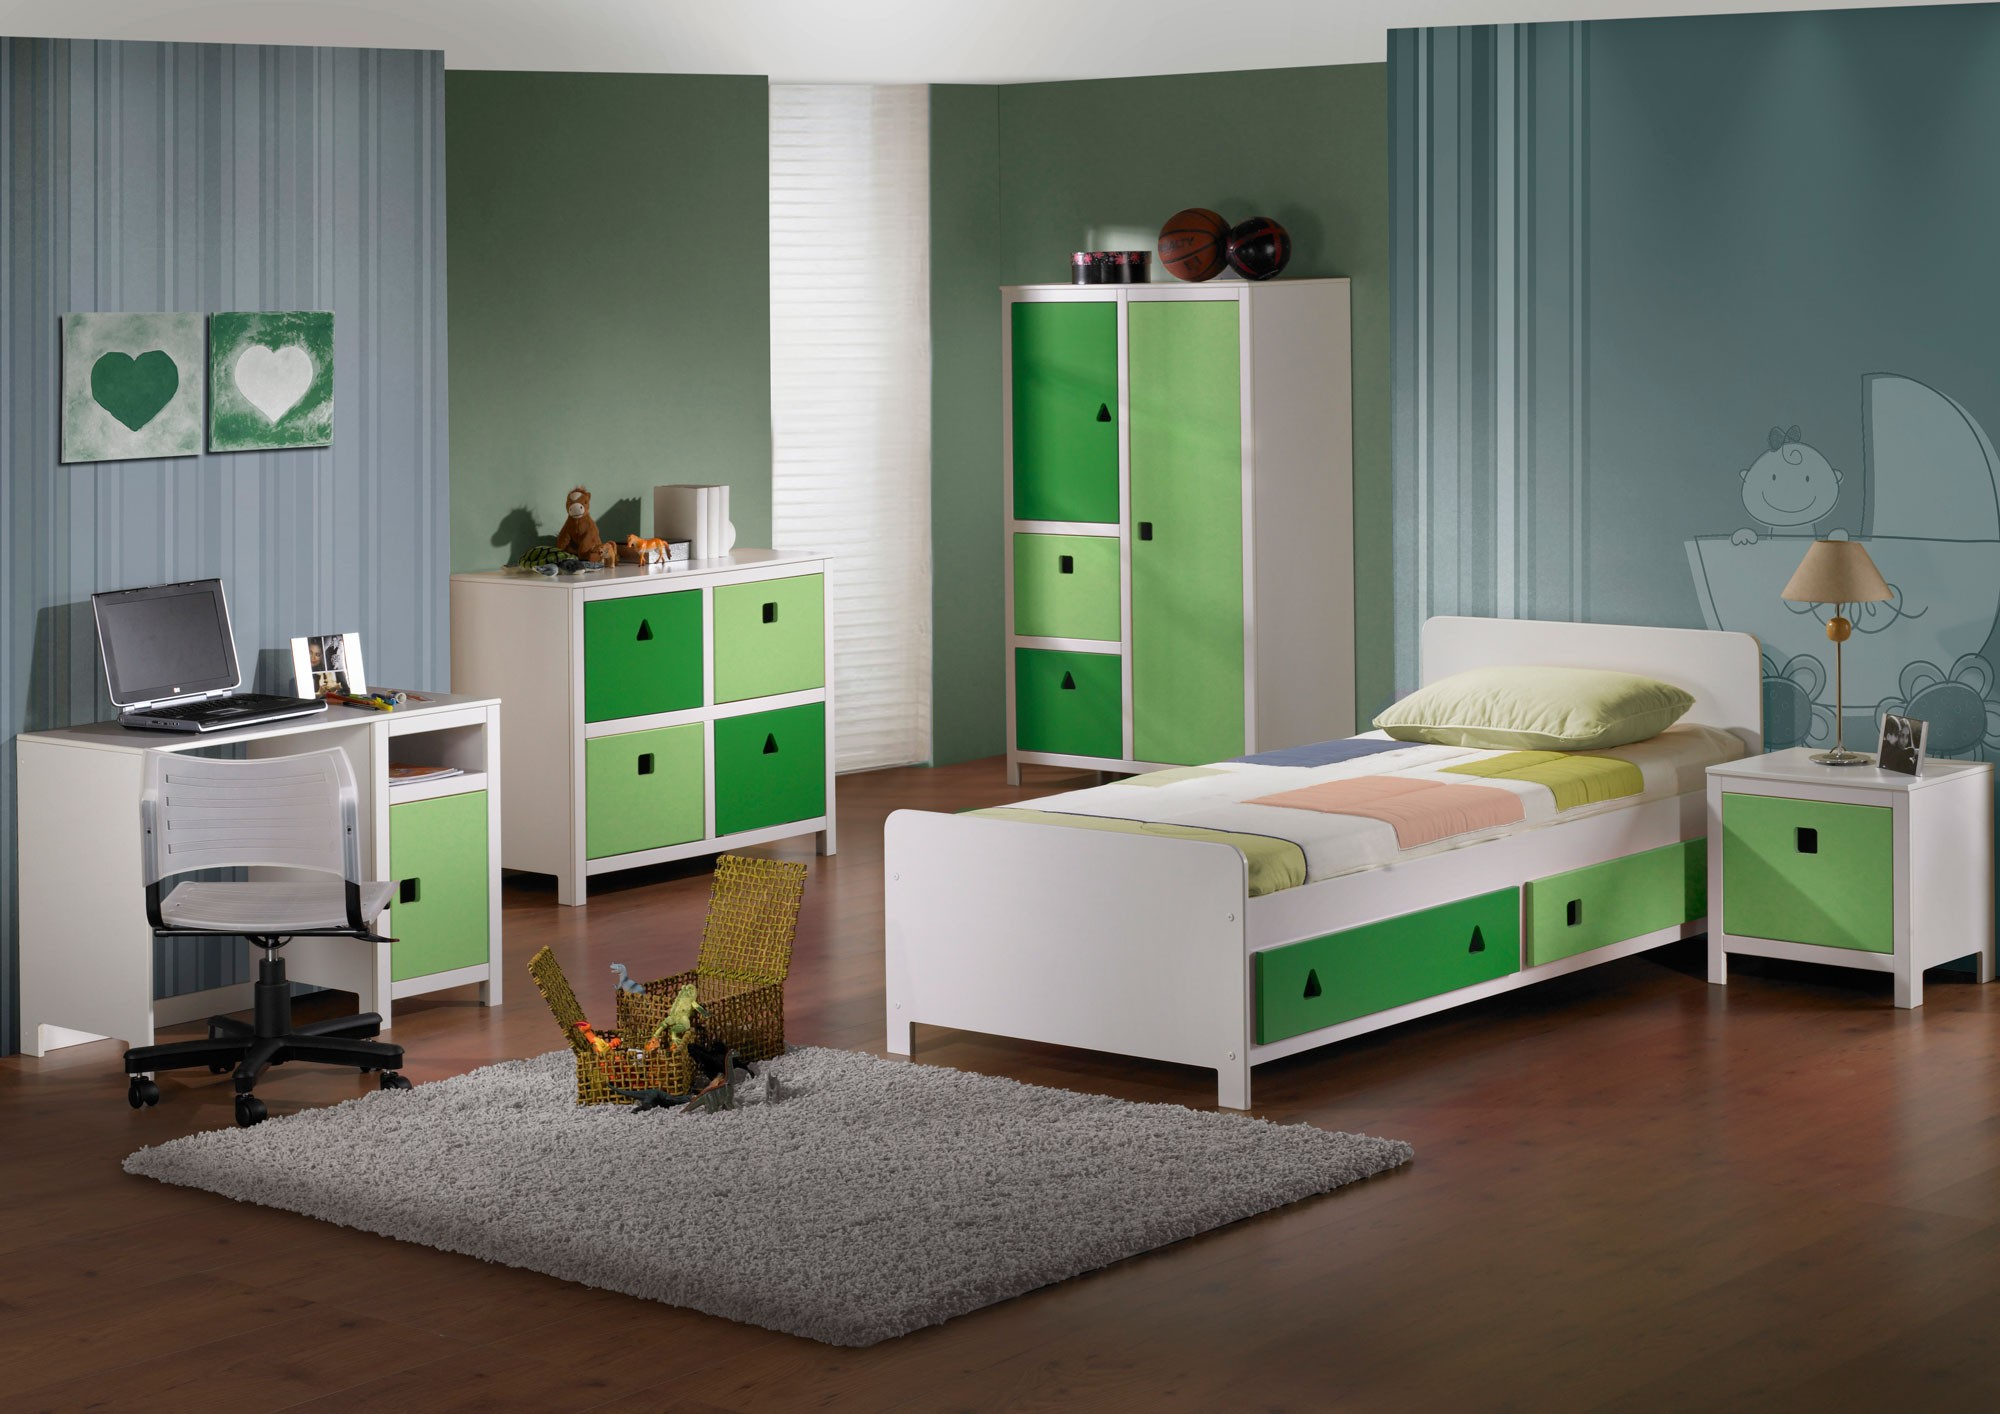 kinderzimmer gr n h c m bel. Black Bedroom Furniture Sets. Home Design Ideas